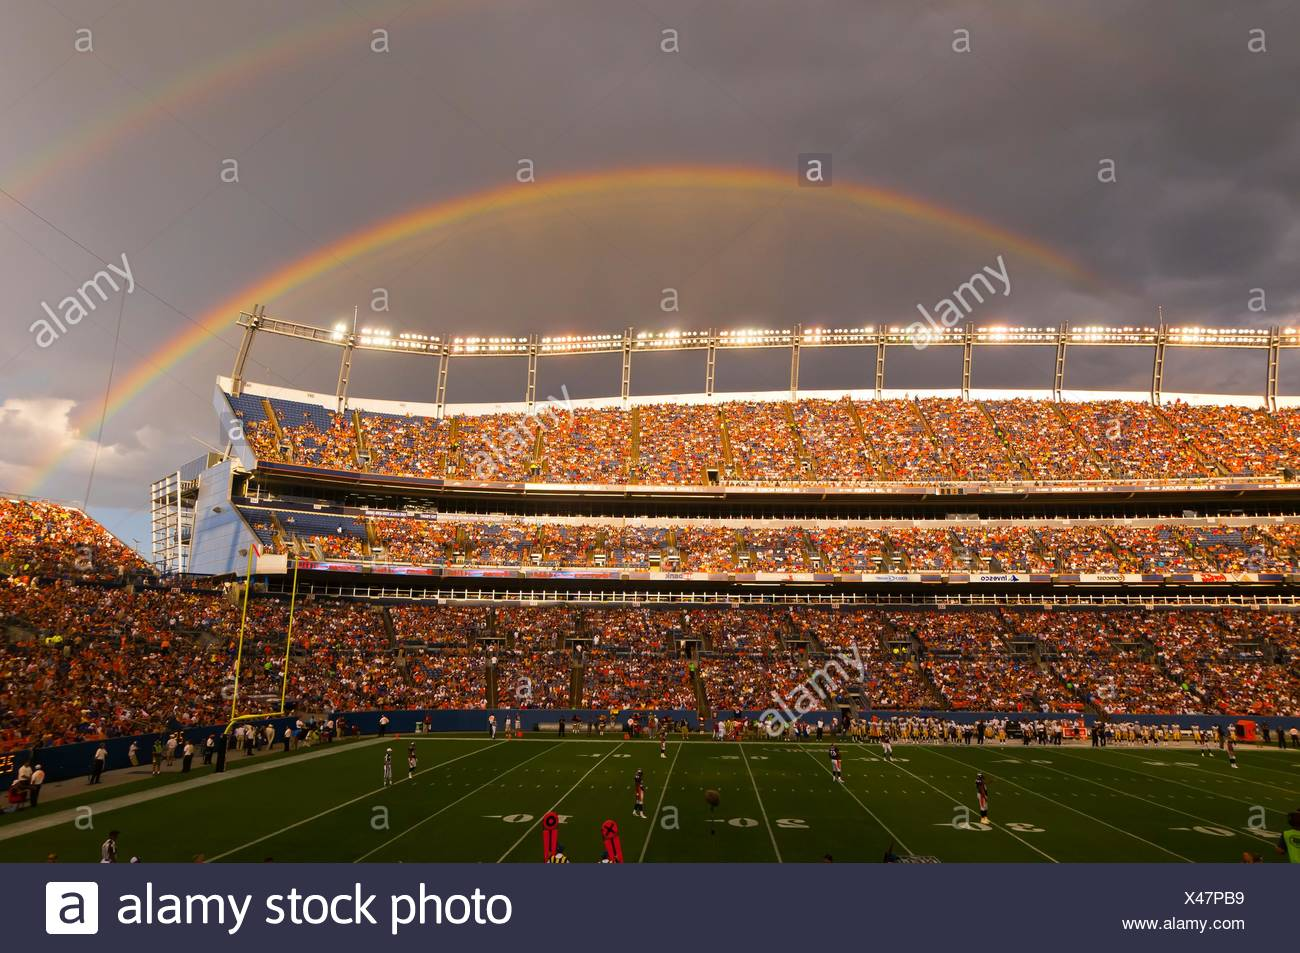 A rainbow over the stadium, Denver Broncos vs. Pittsburgh Steelers NFL football game, Invesco Field at Mile High (stadium), Stock Photo